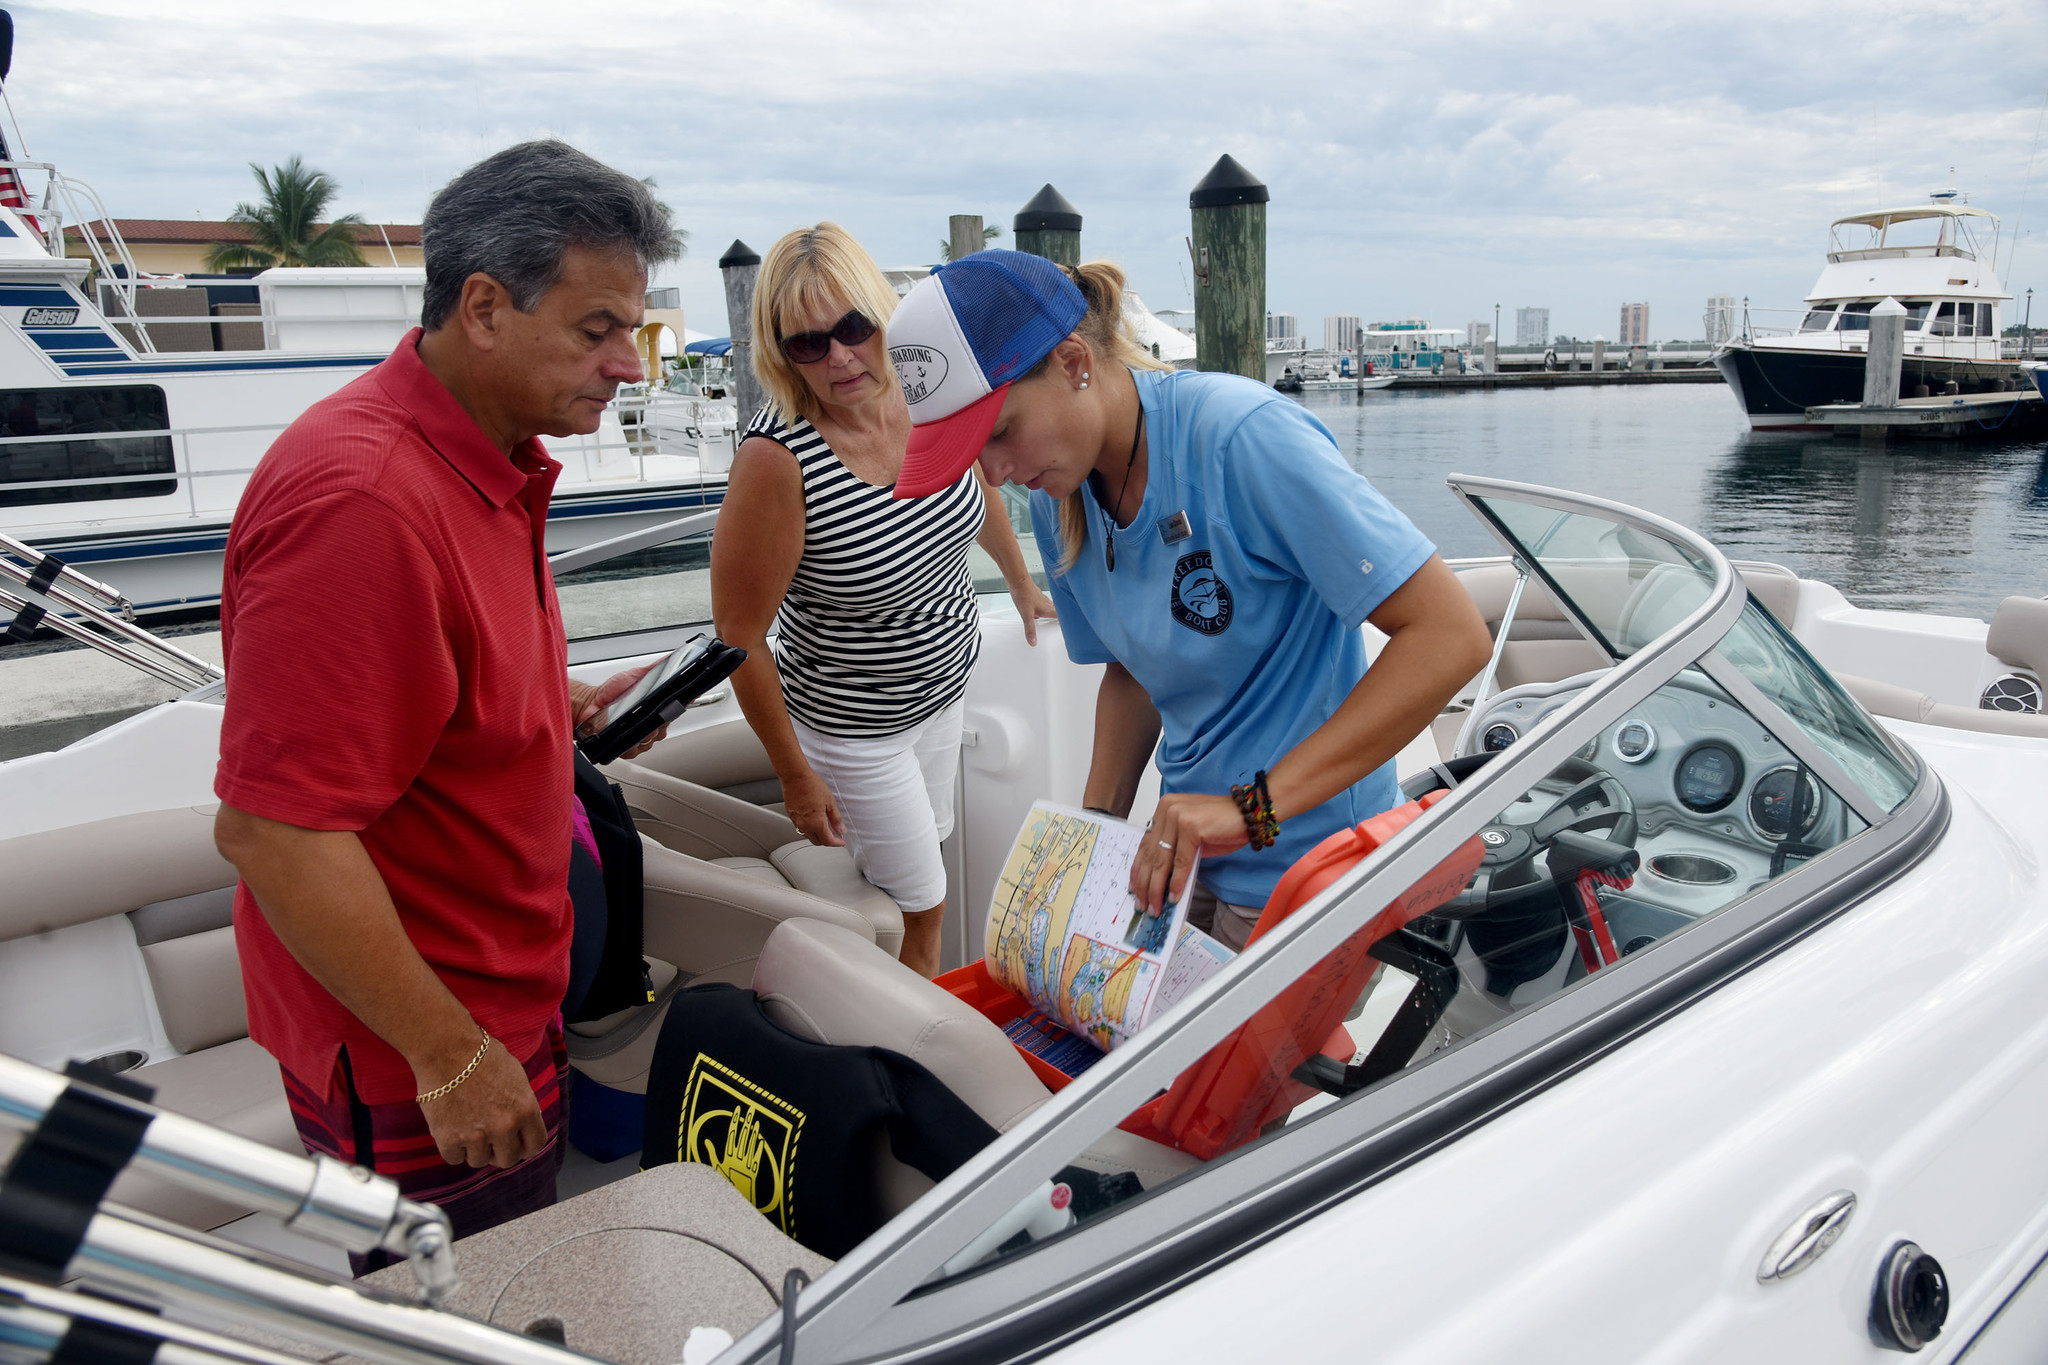 Boating options grow — even without owning a boat - Sun Sentinel